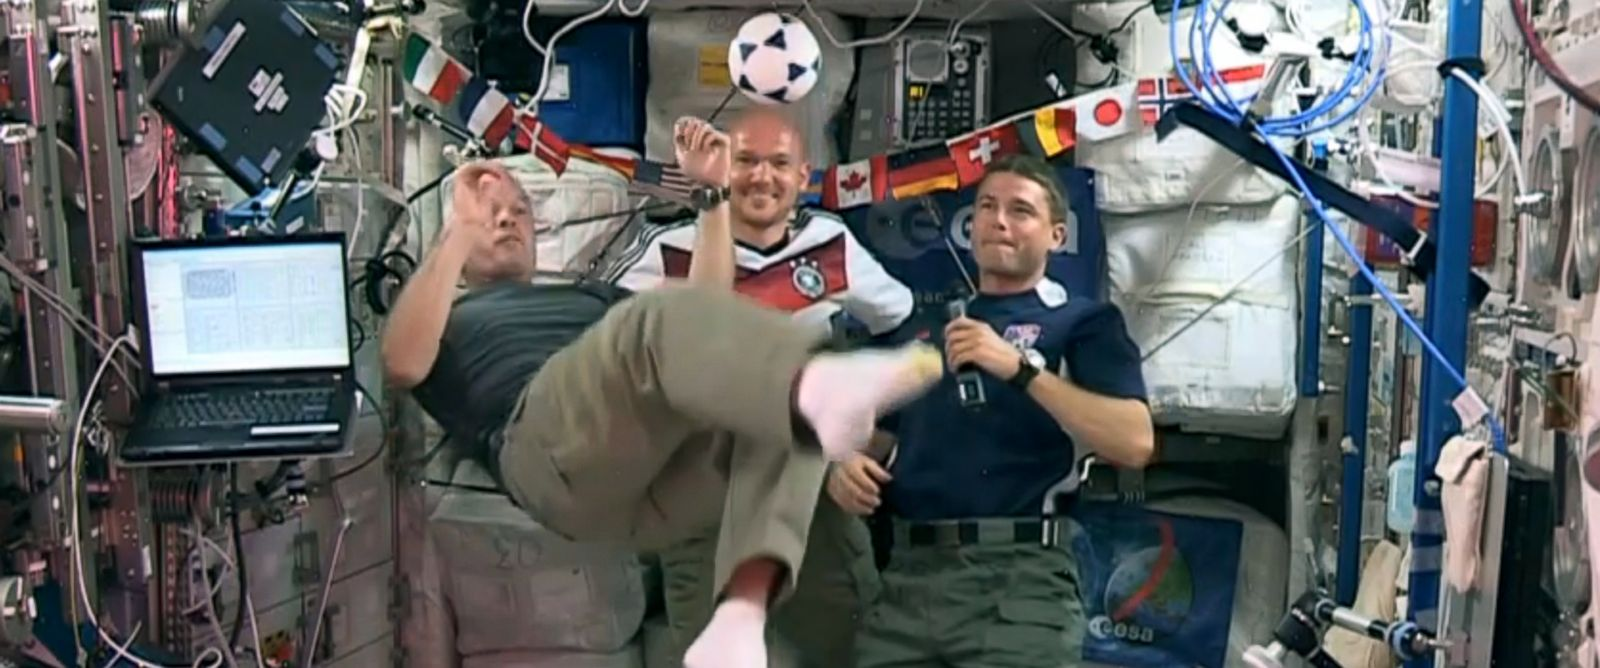 PHOTO: Astronauts Steve Swanson, left, Reid Wiseman, right, and German astronaut Alexander Gerst, center, kick around a soccer ball some 230 miles above Earth aboard the International Space Station.